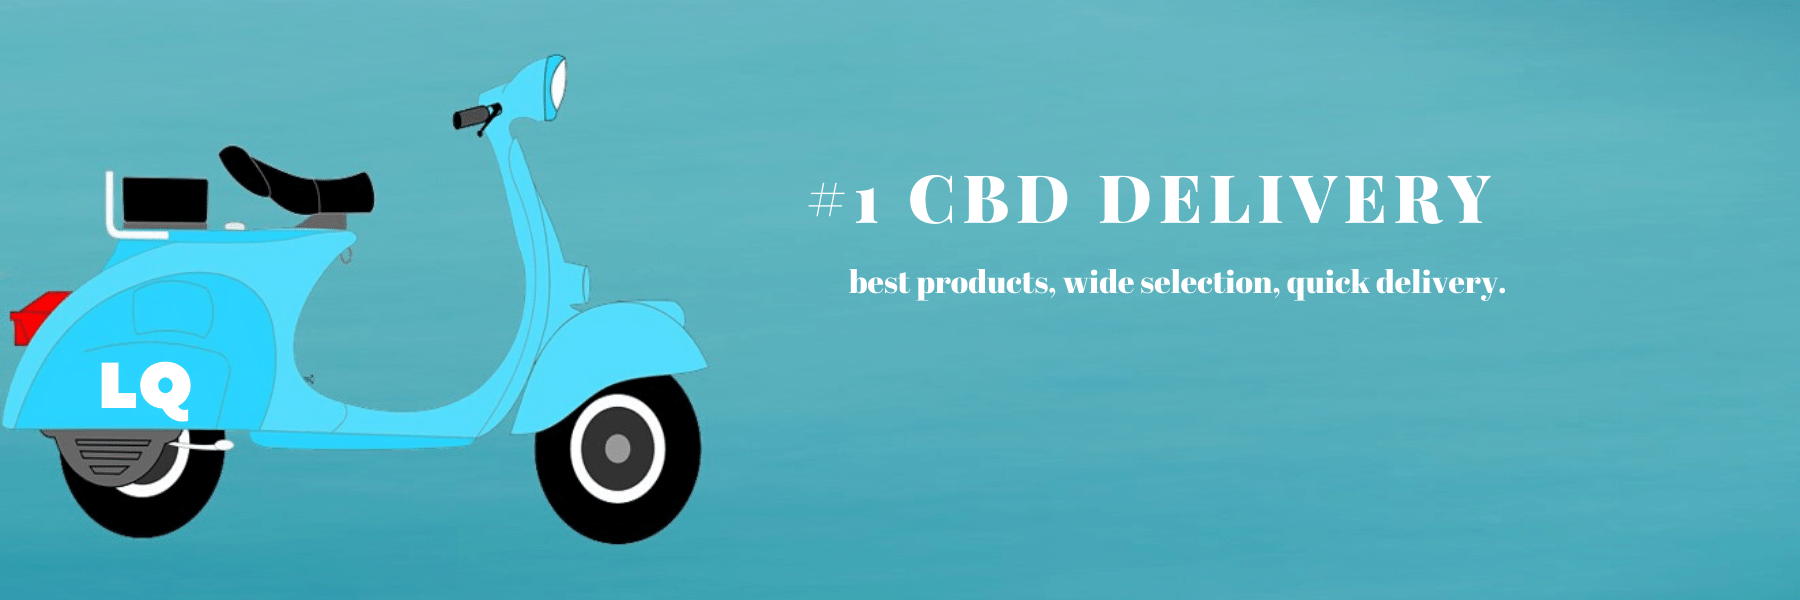 LeafyQuick # 1 CBD Delivery